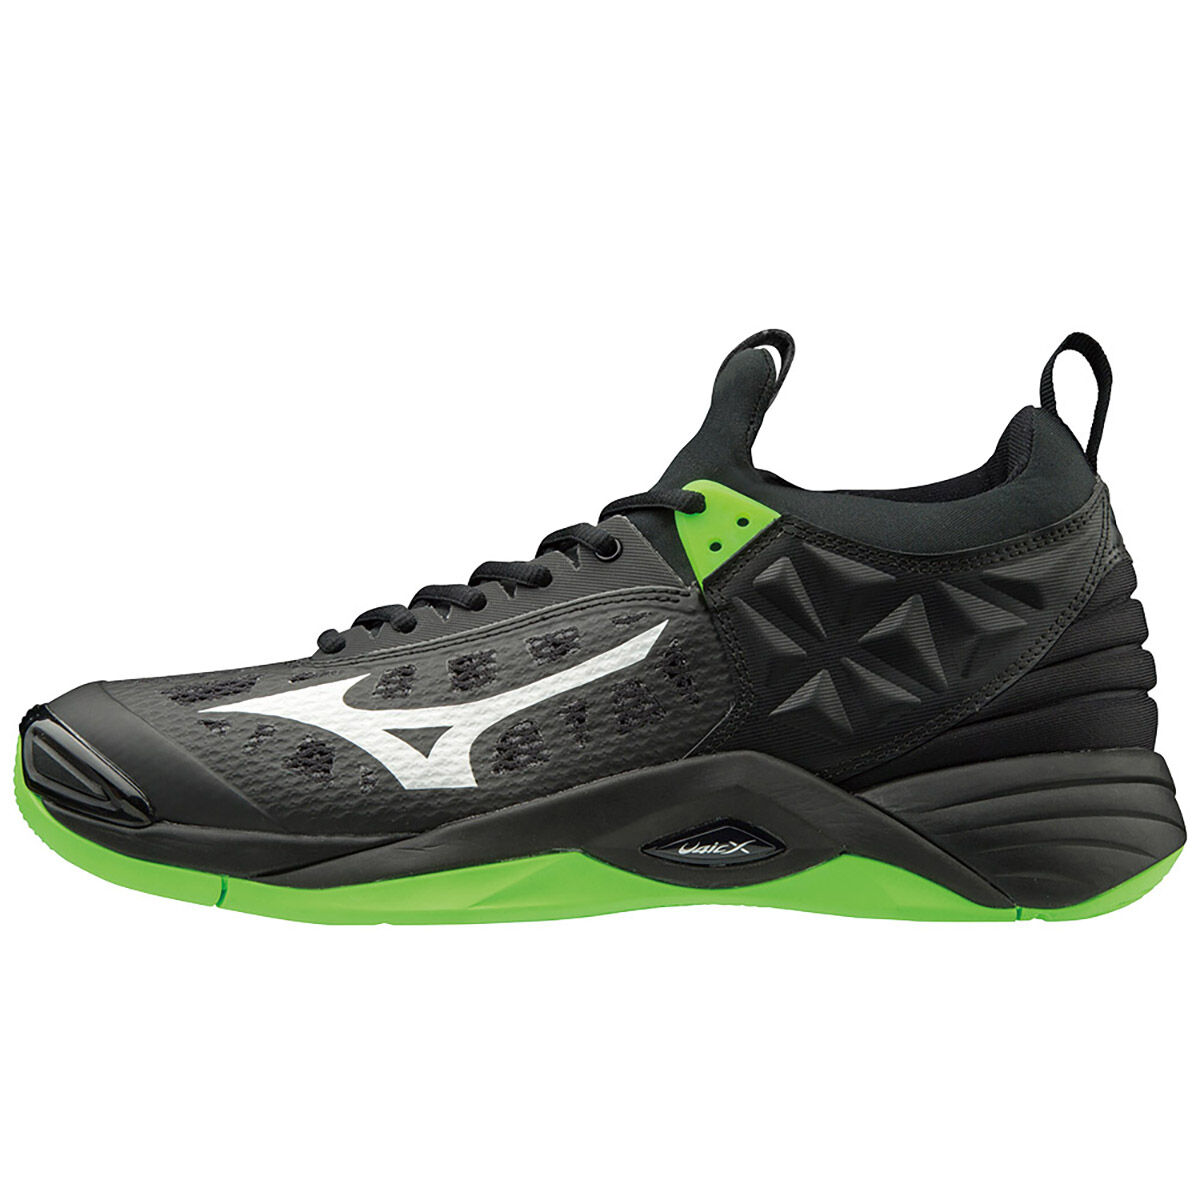 9e672a18c8b4 mizuno green volleyball shoes | ventes flash